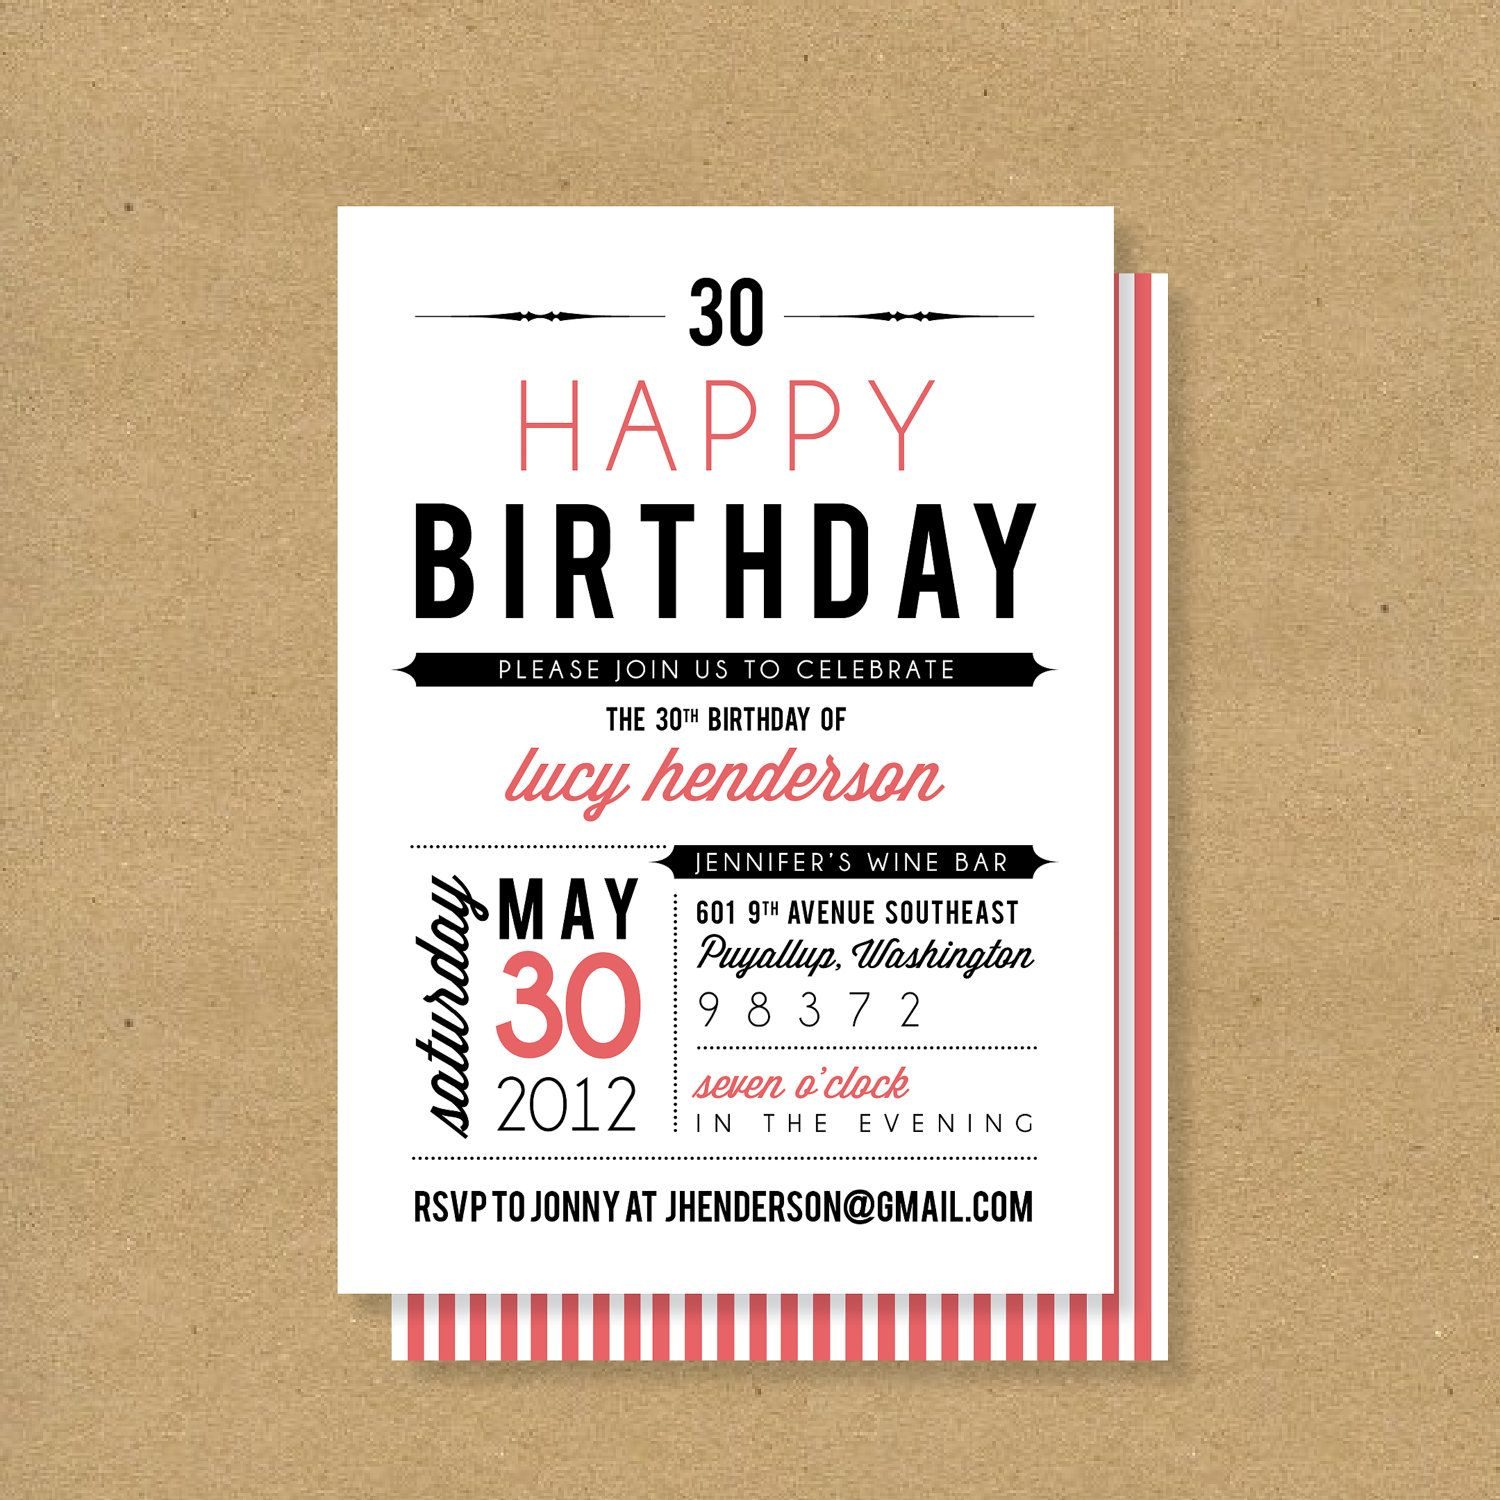 Birthday invitation fonts image collections baby shower baby shower invitations fonts party xyz filmwisefo